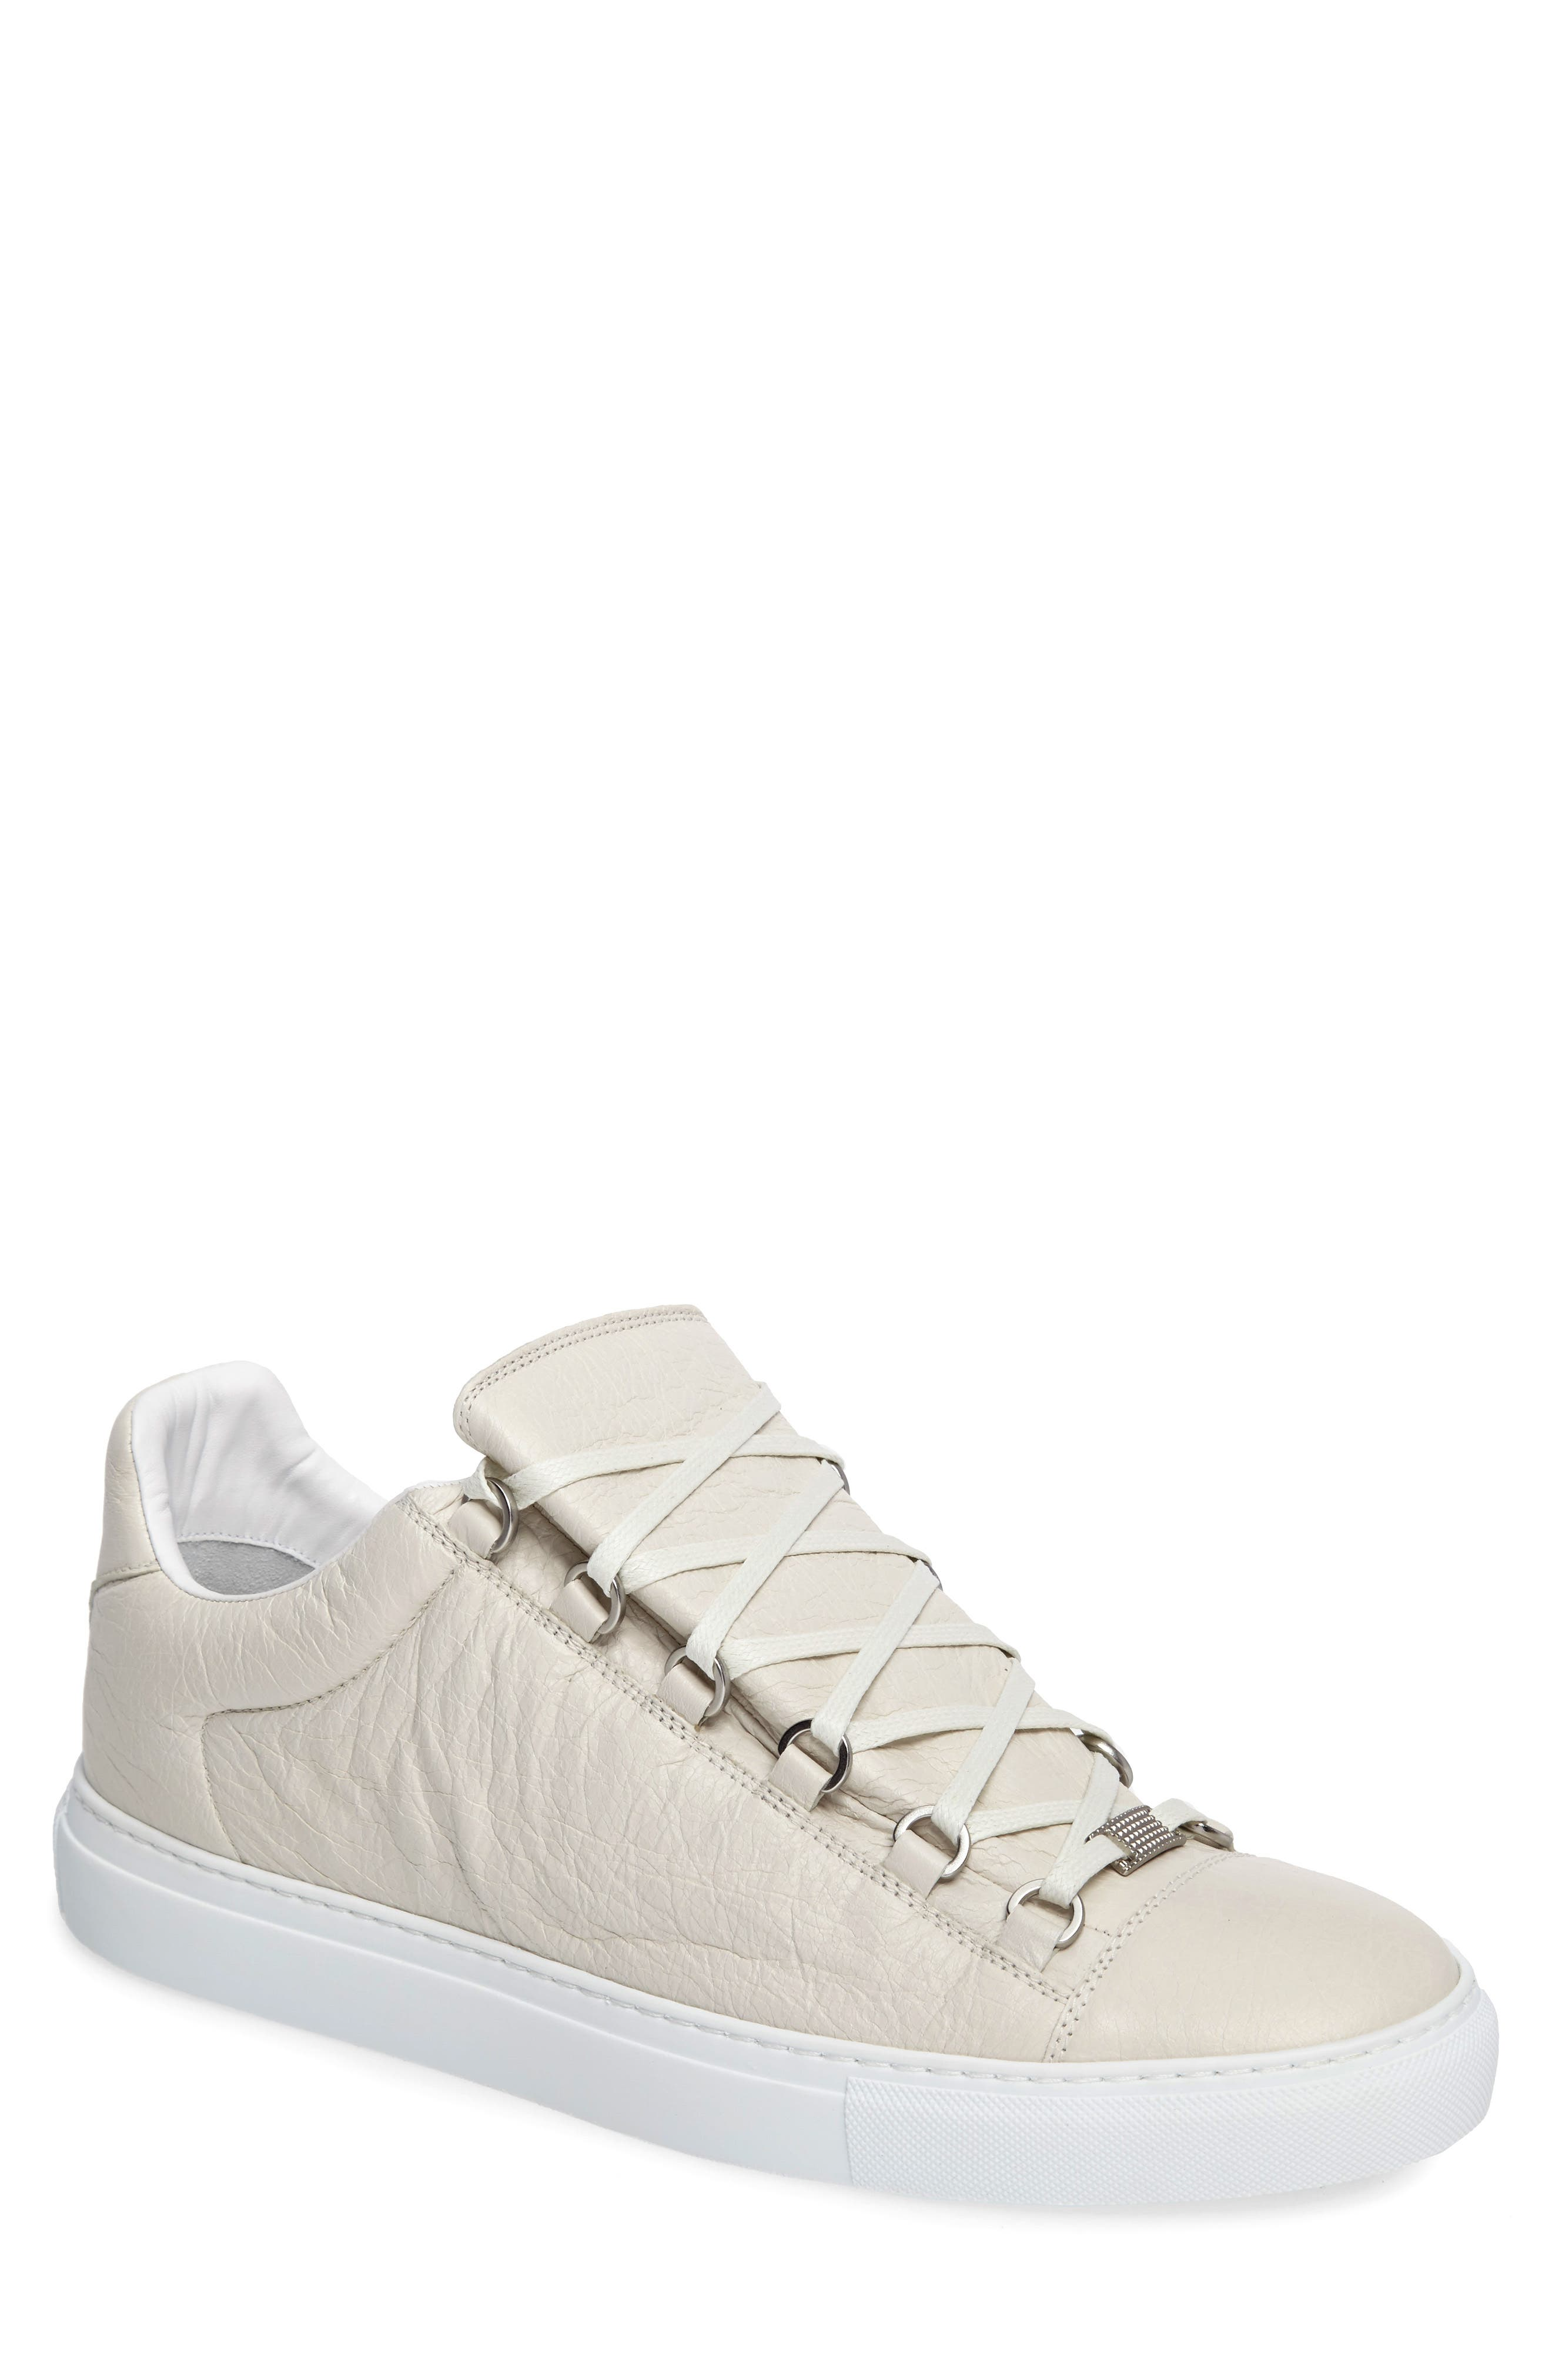 Arena Low Sneaker,                         Main,                         color, Extra Blanc Leather